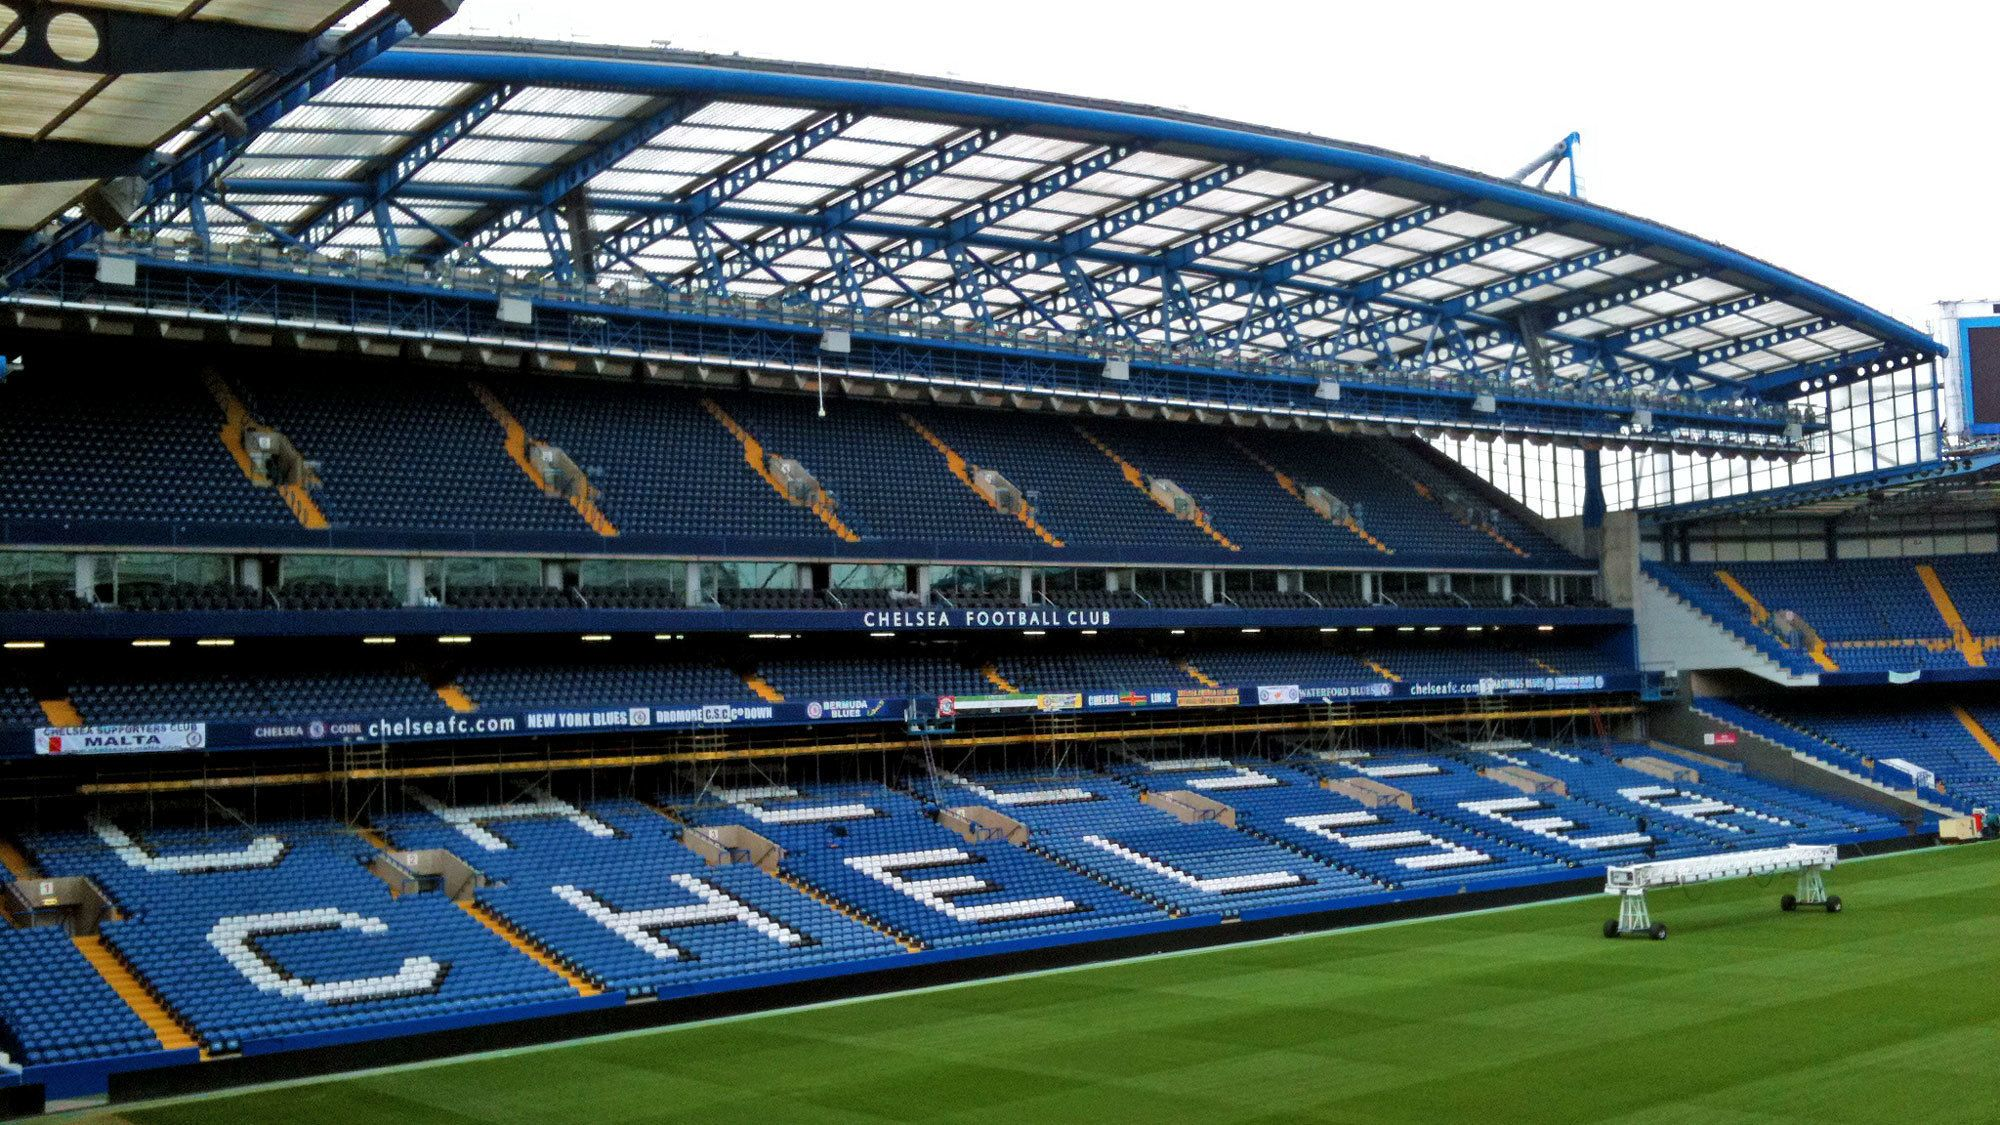 Panoramic view of the seating area inside the Stamford Bridge Stadium in London